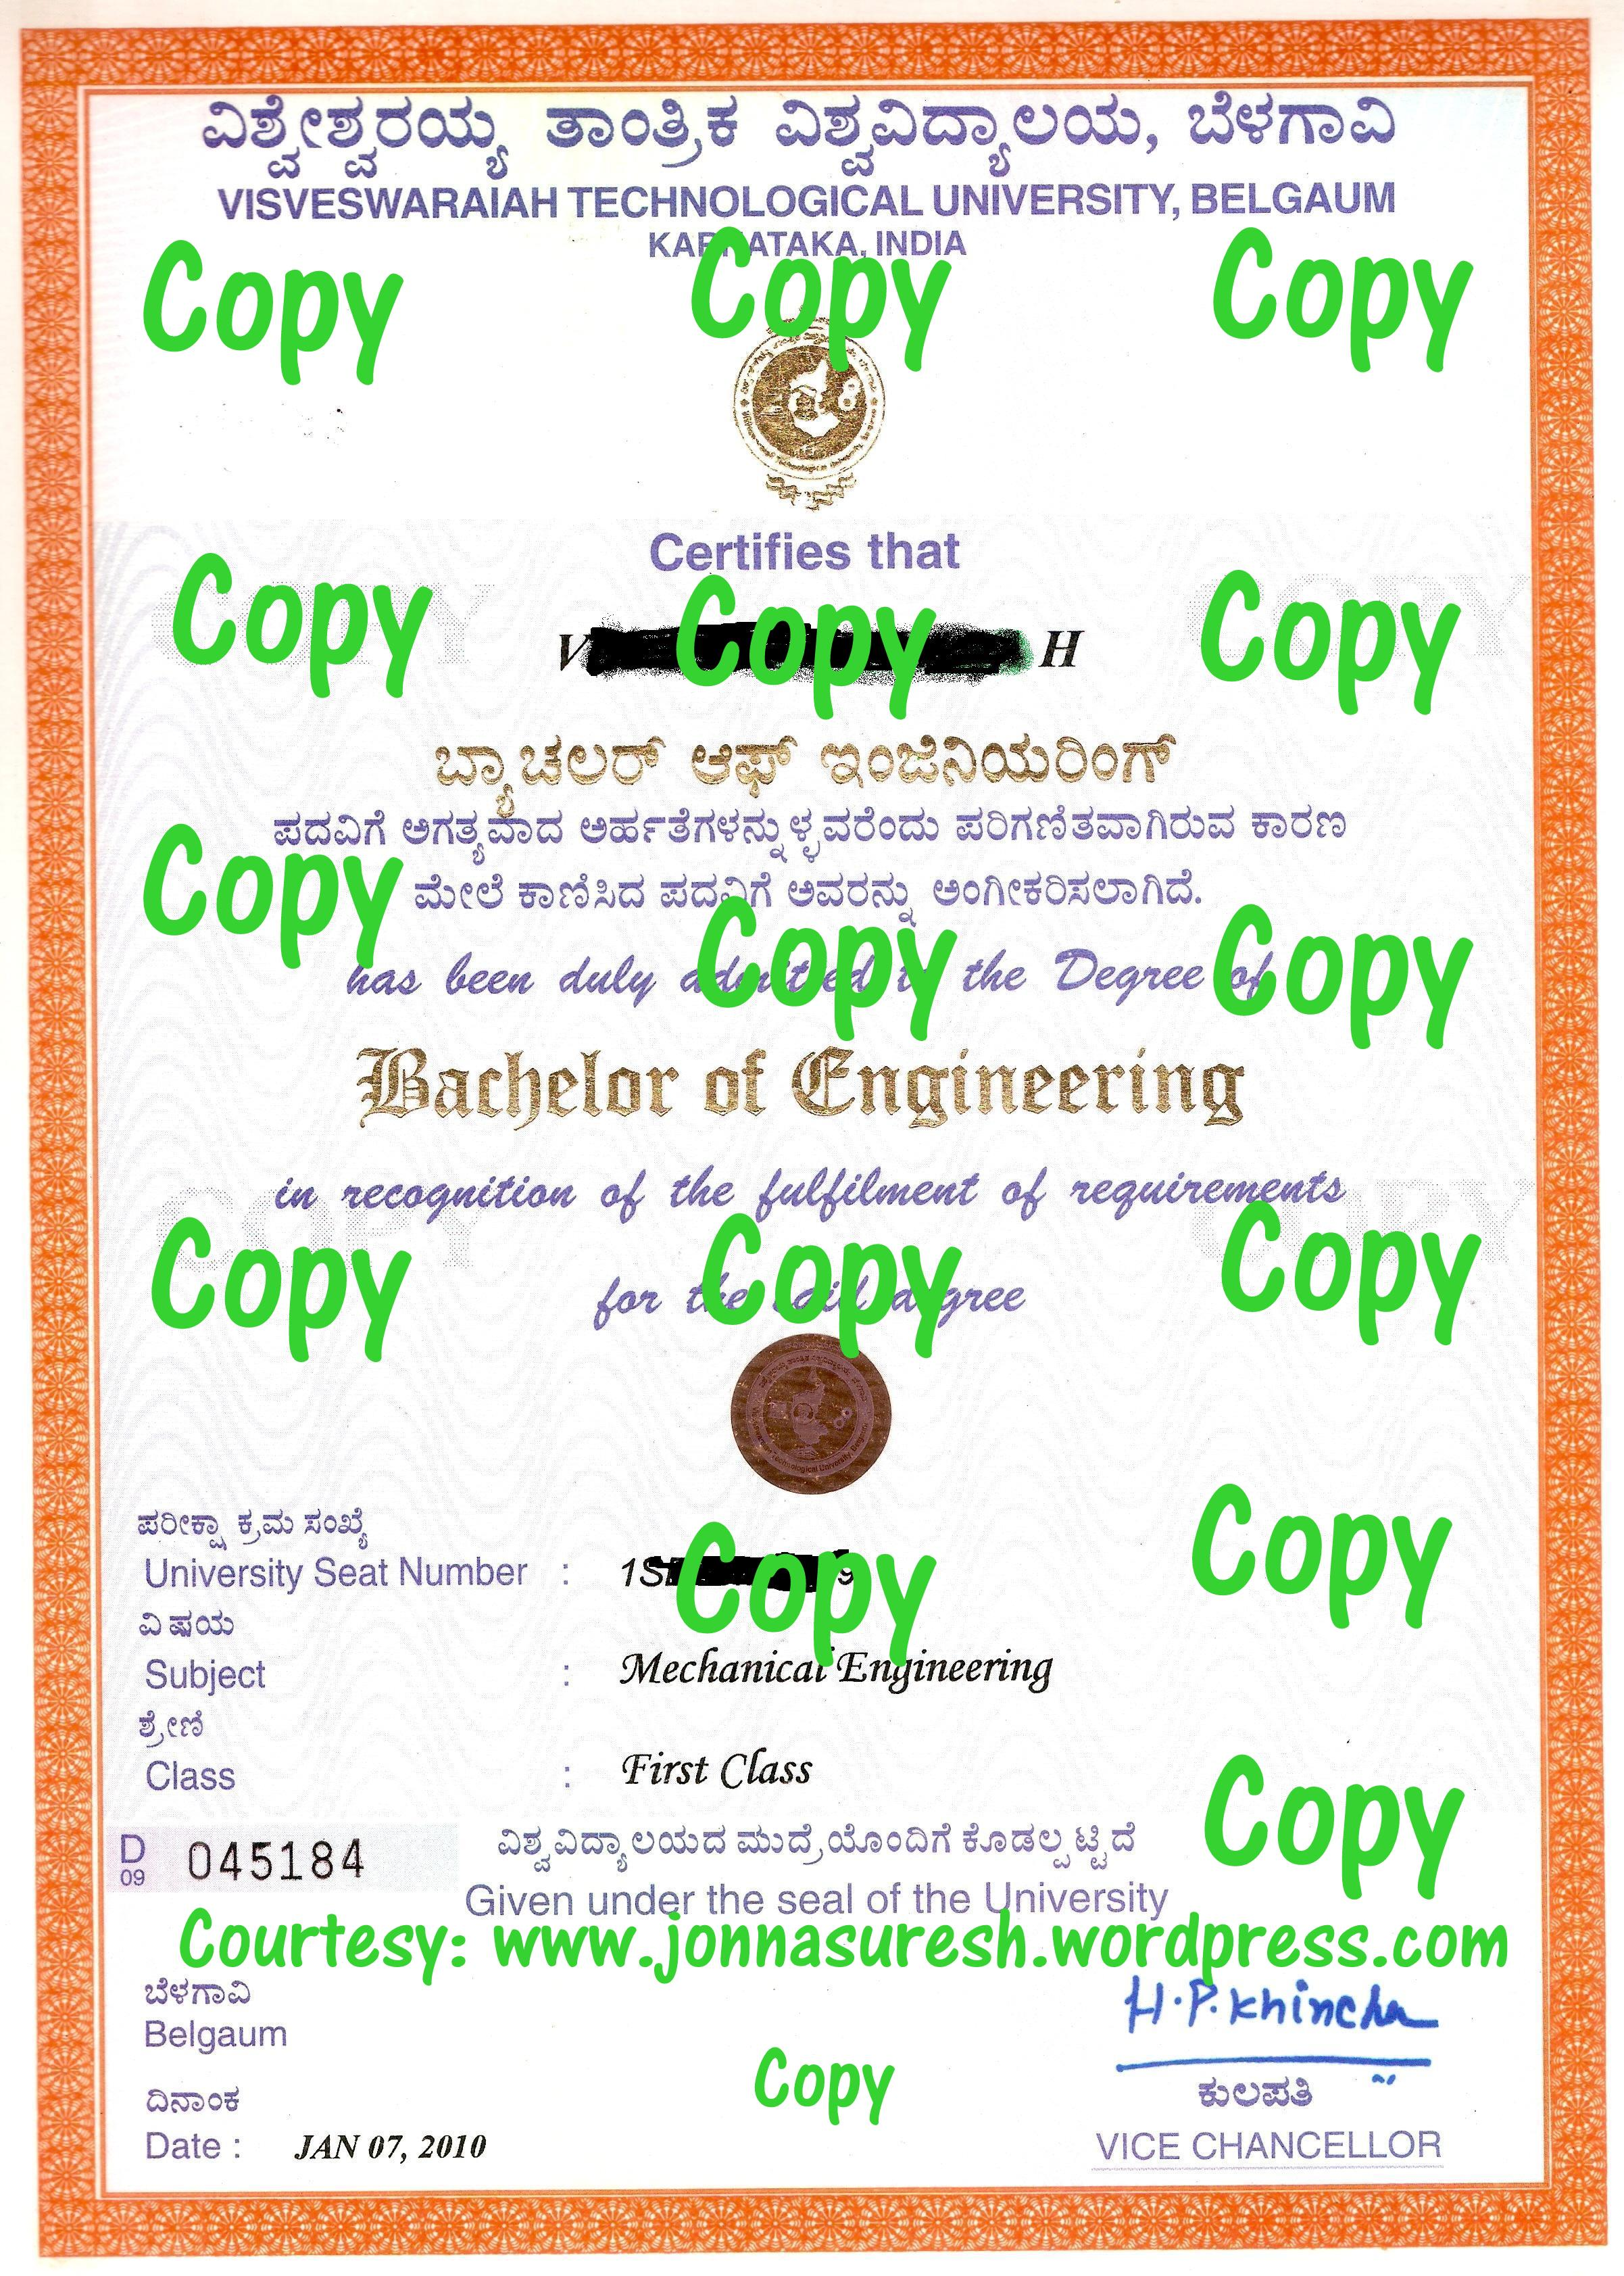 How to get degree certificateconvocation degree certificate vtu vtu degree certificate yadclub Image collections